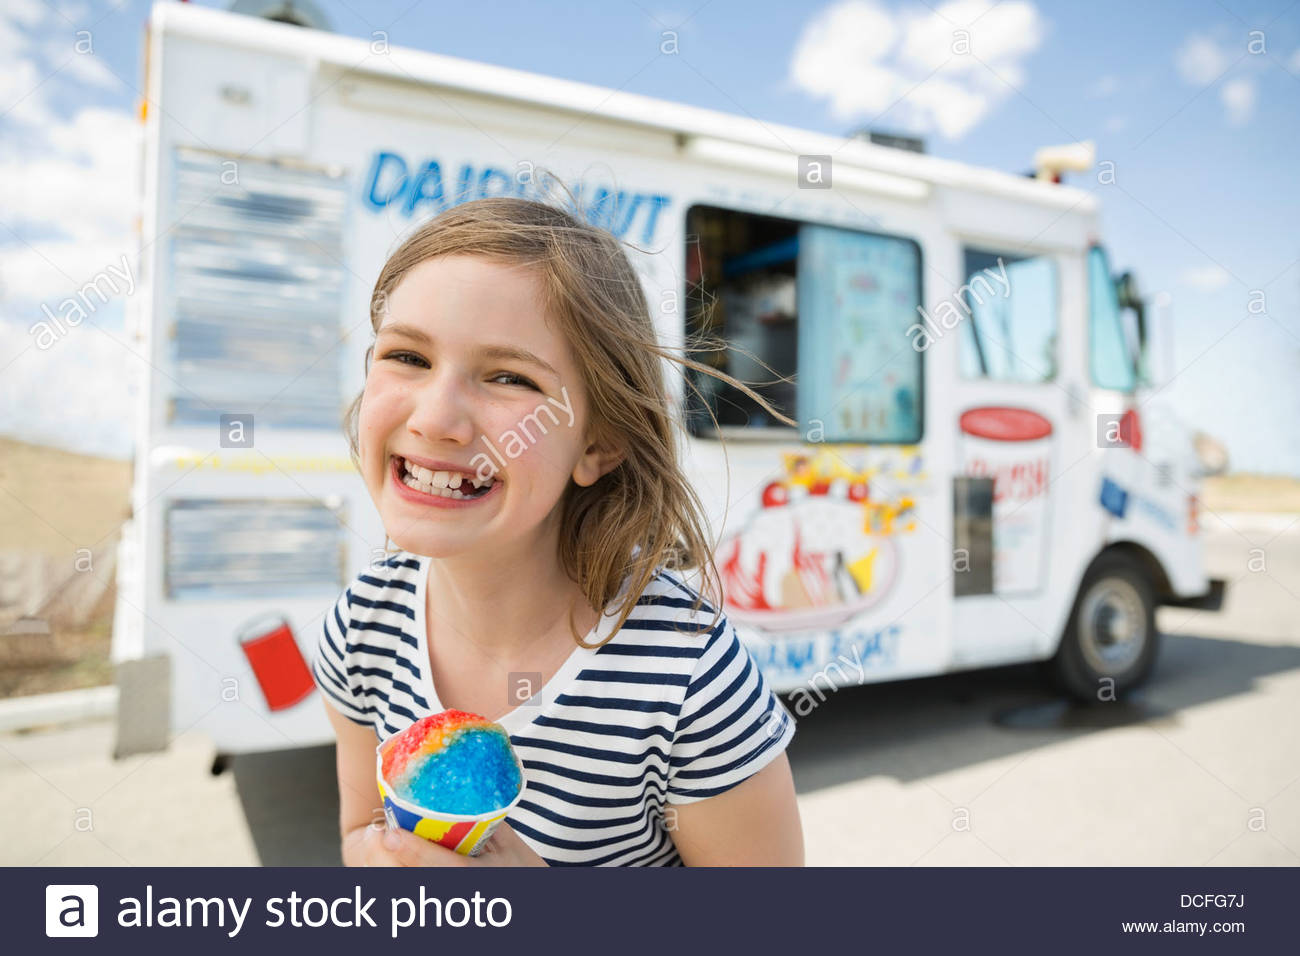 Portrait of smiling girl holding snow cone - Stock Image